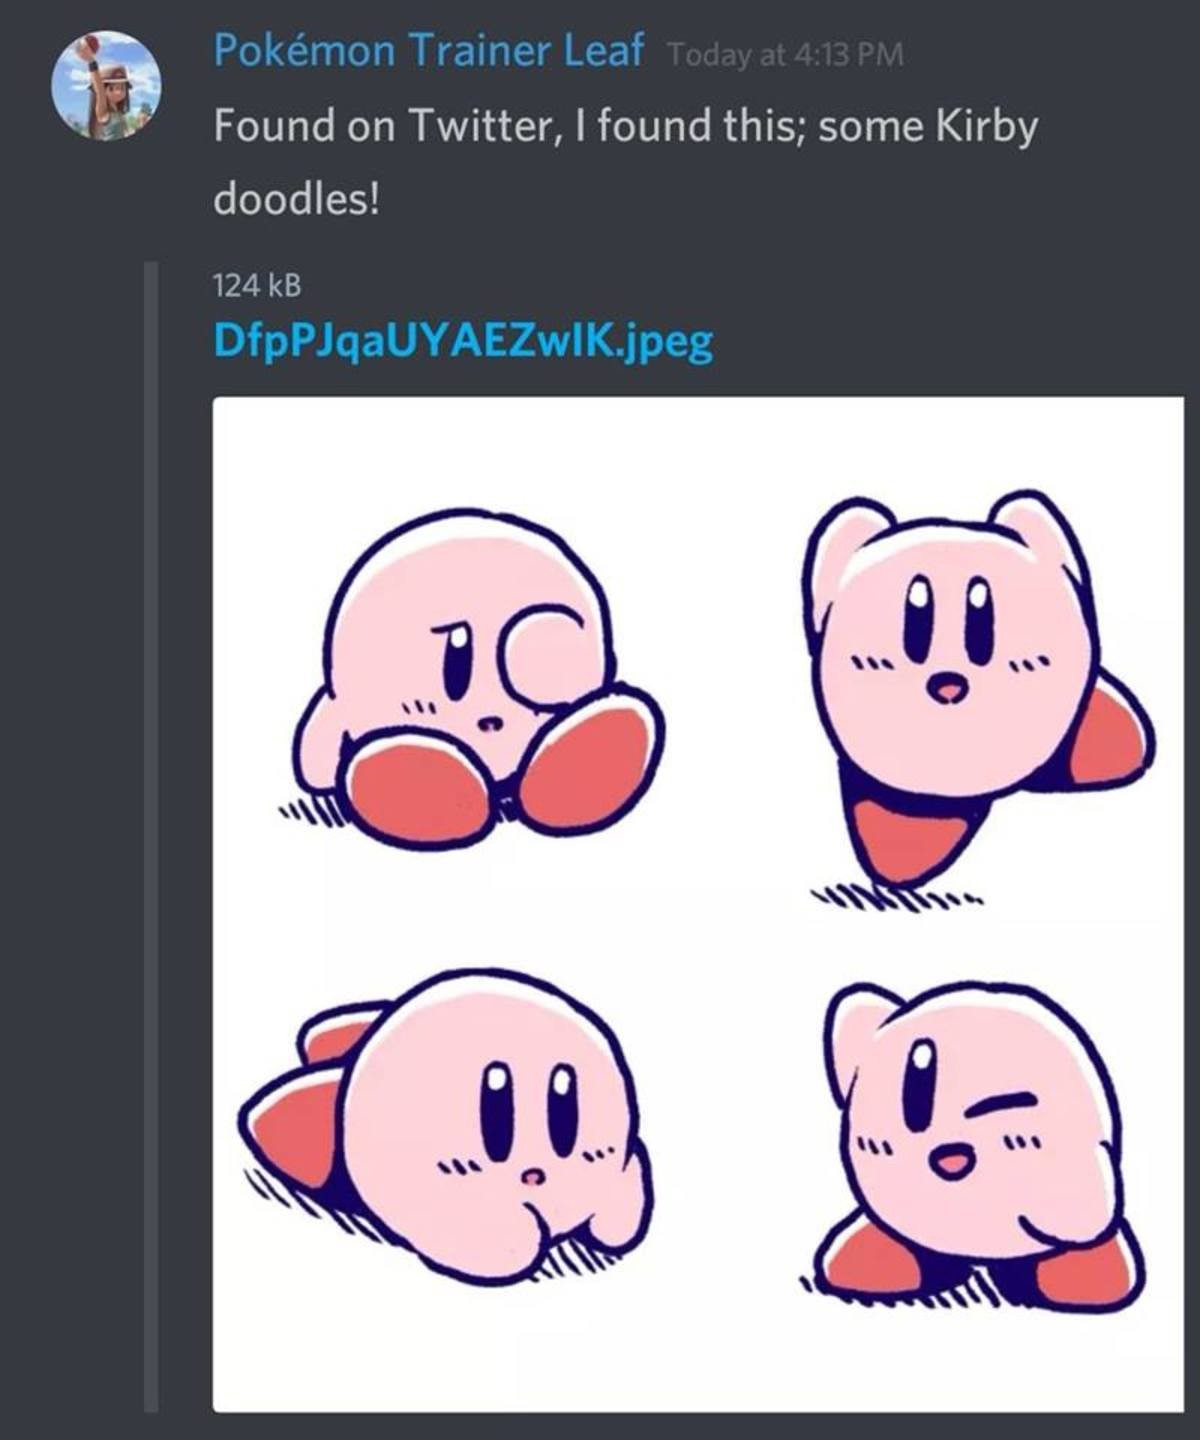 Get Poyo'd on. .. Has loss become part of the Internet's DNA?